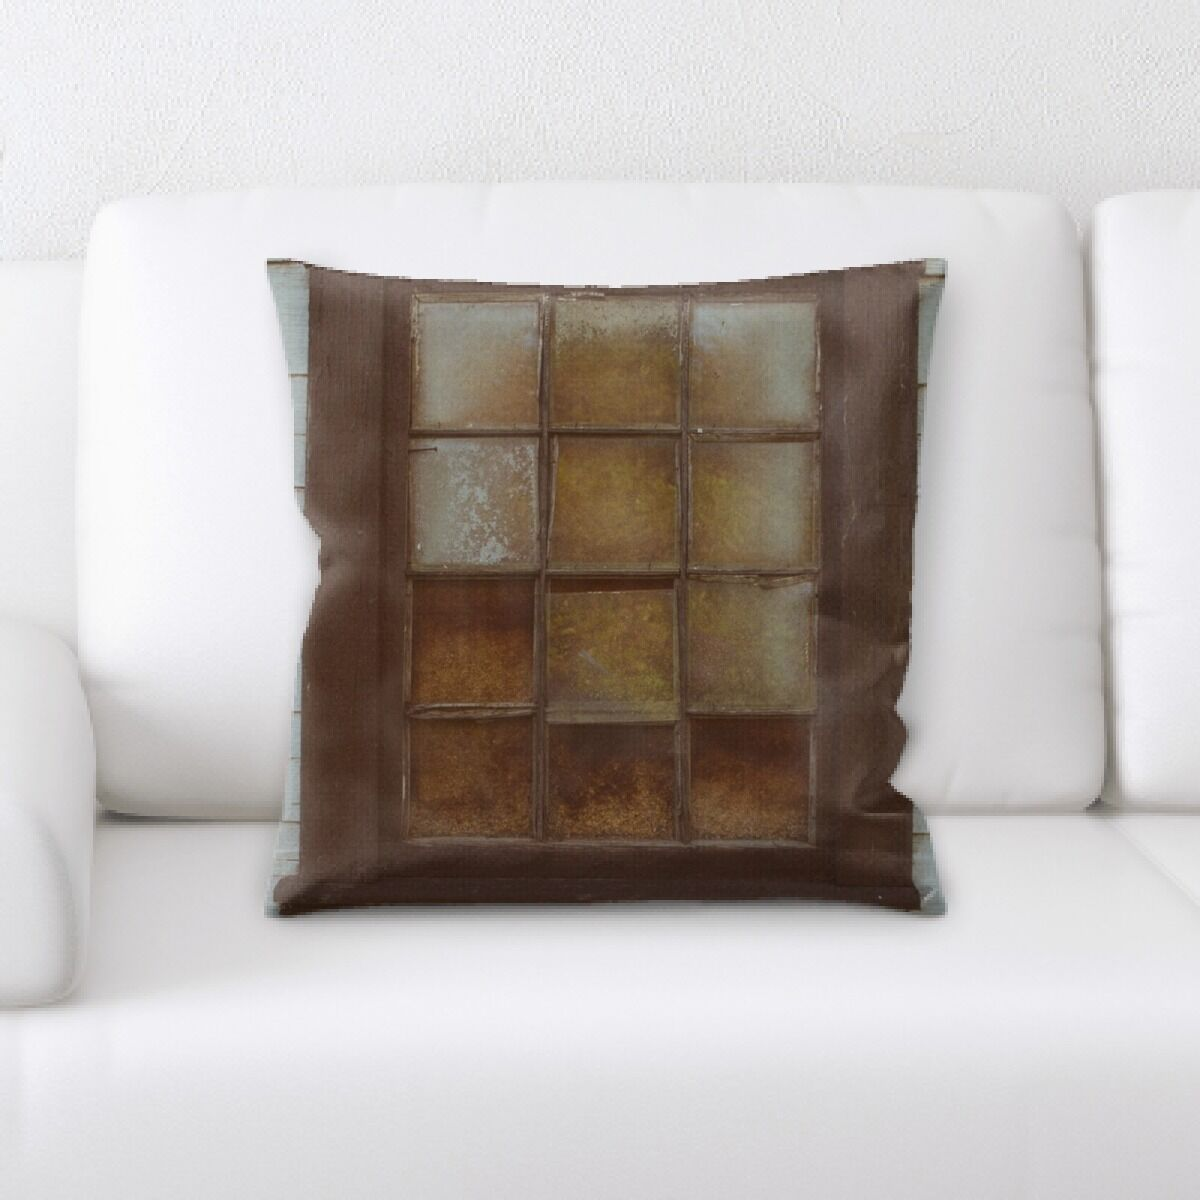 Thorne Old and Abandoned (205) Throw Pillow